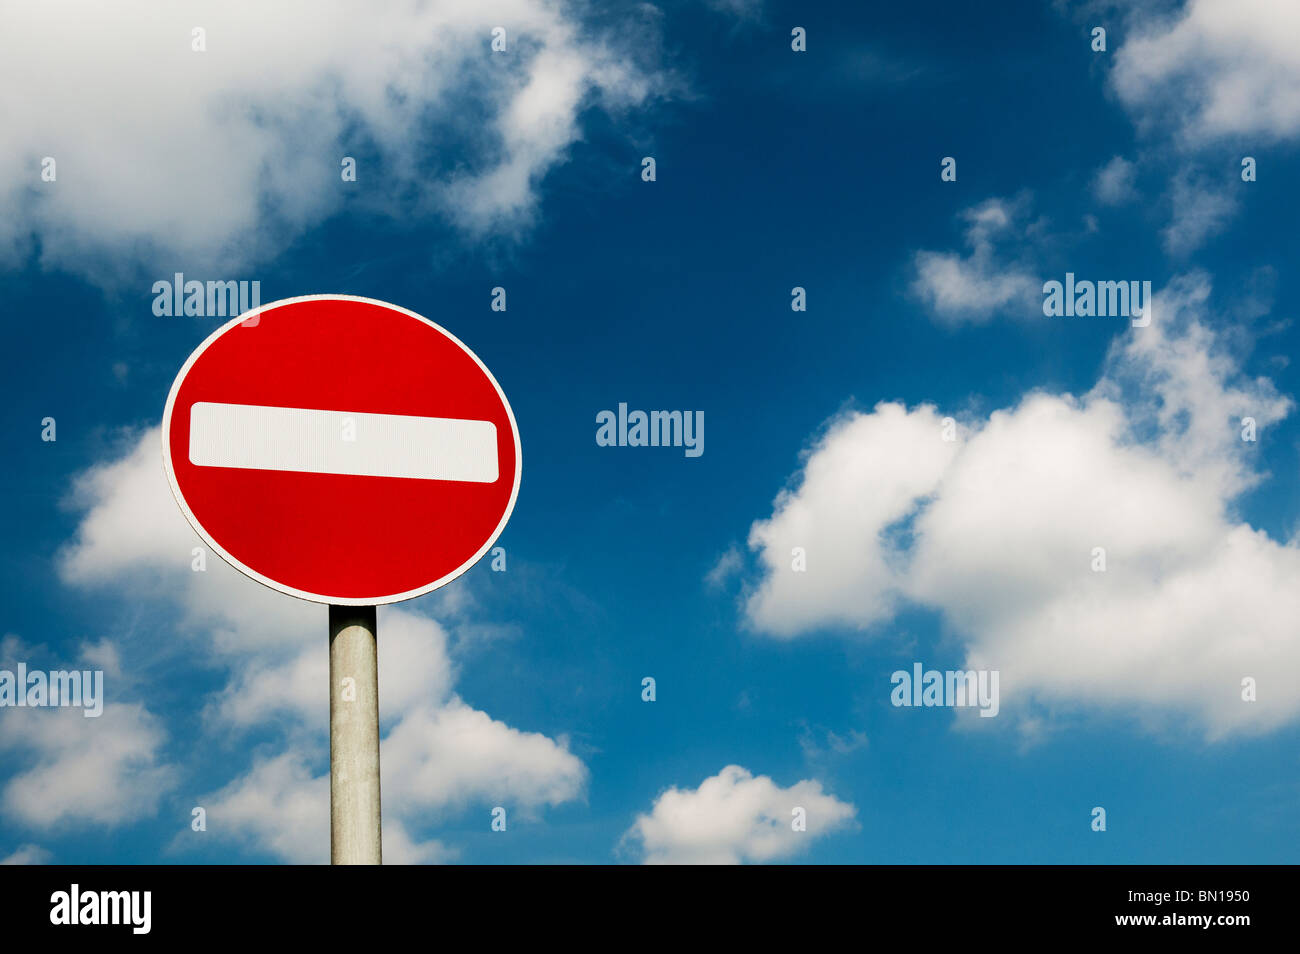 No entry road signpost against a cloudy blue sky. UK - Stock Image